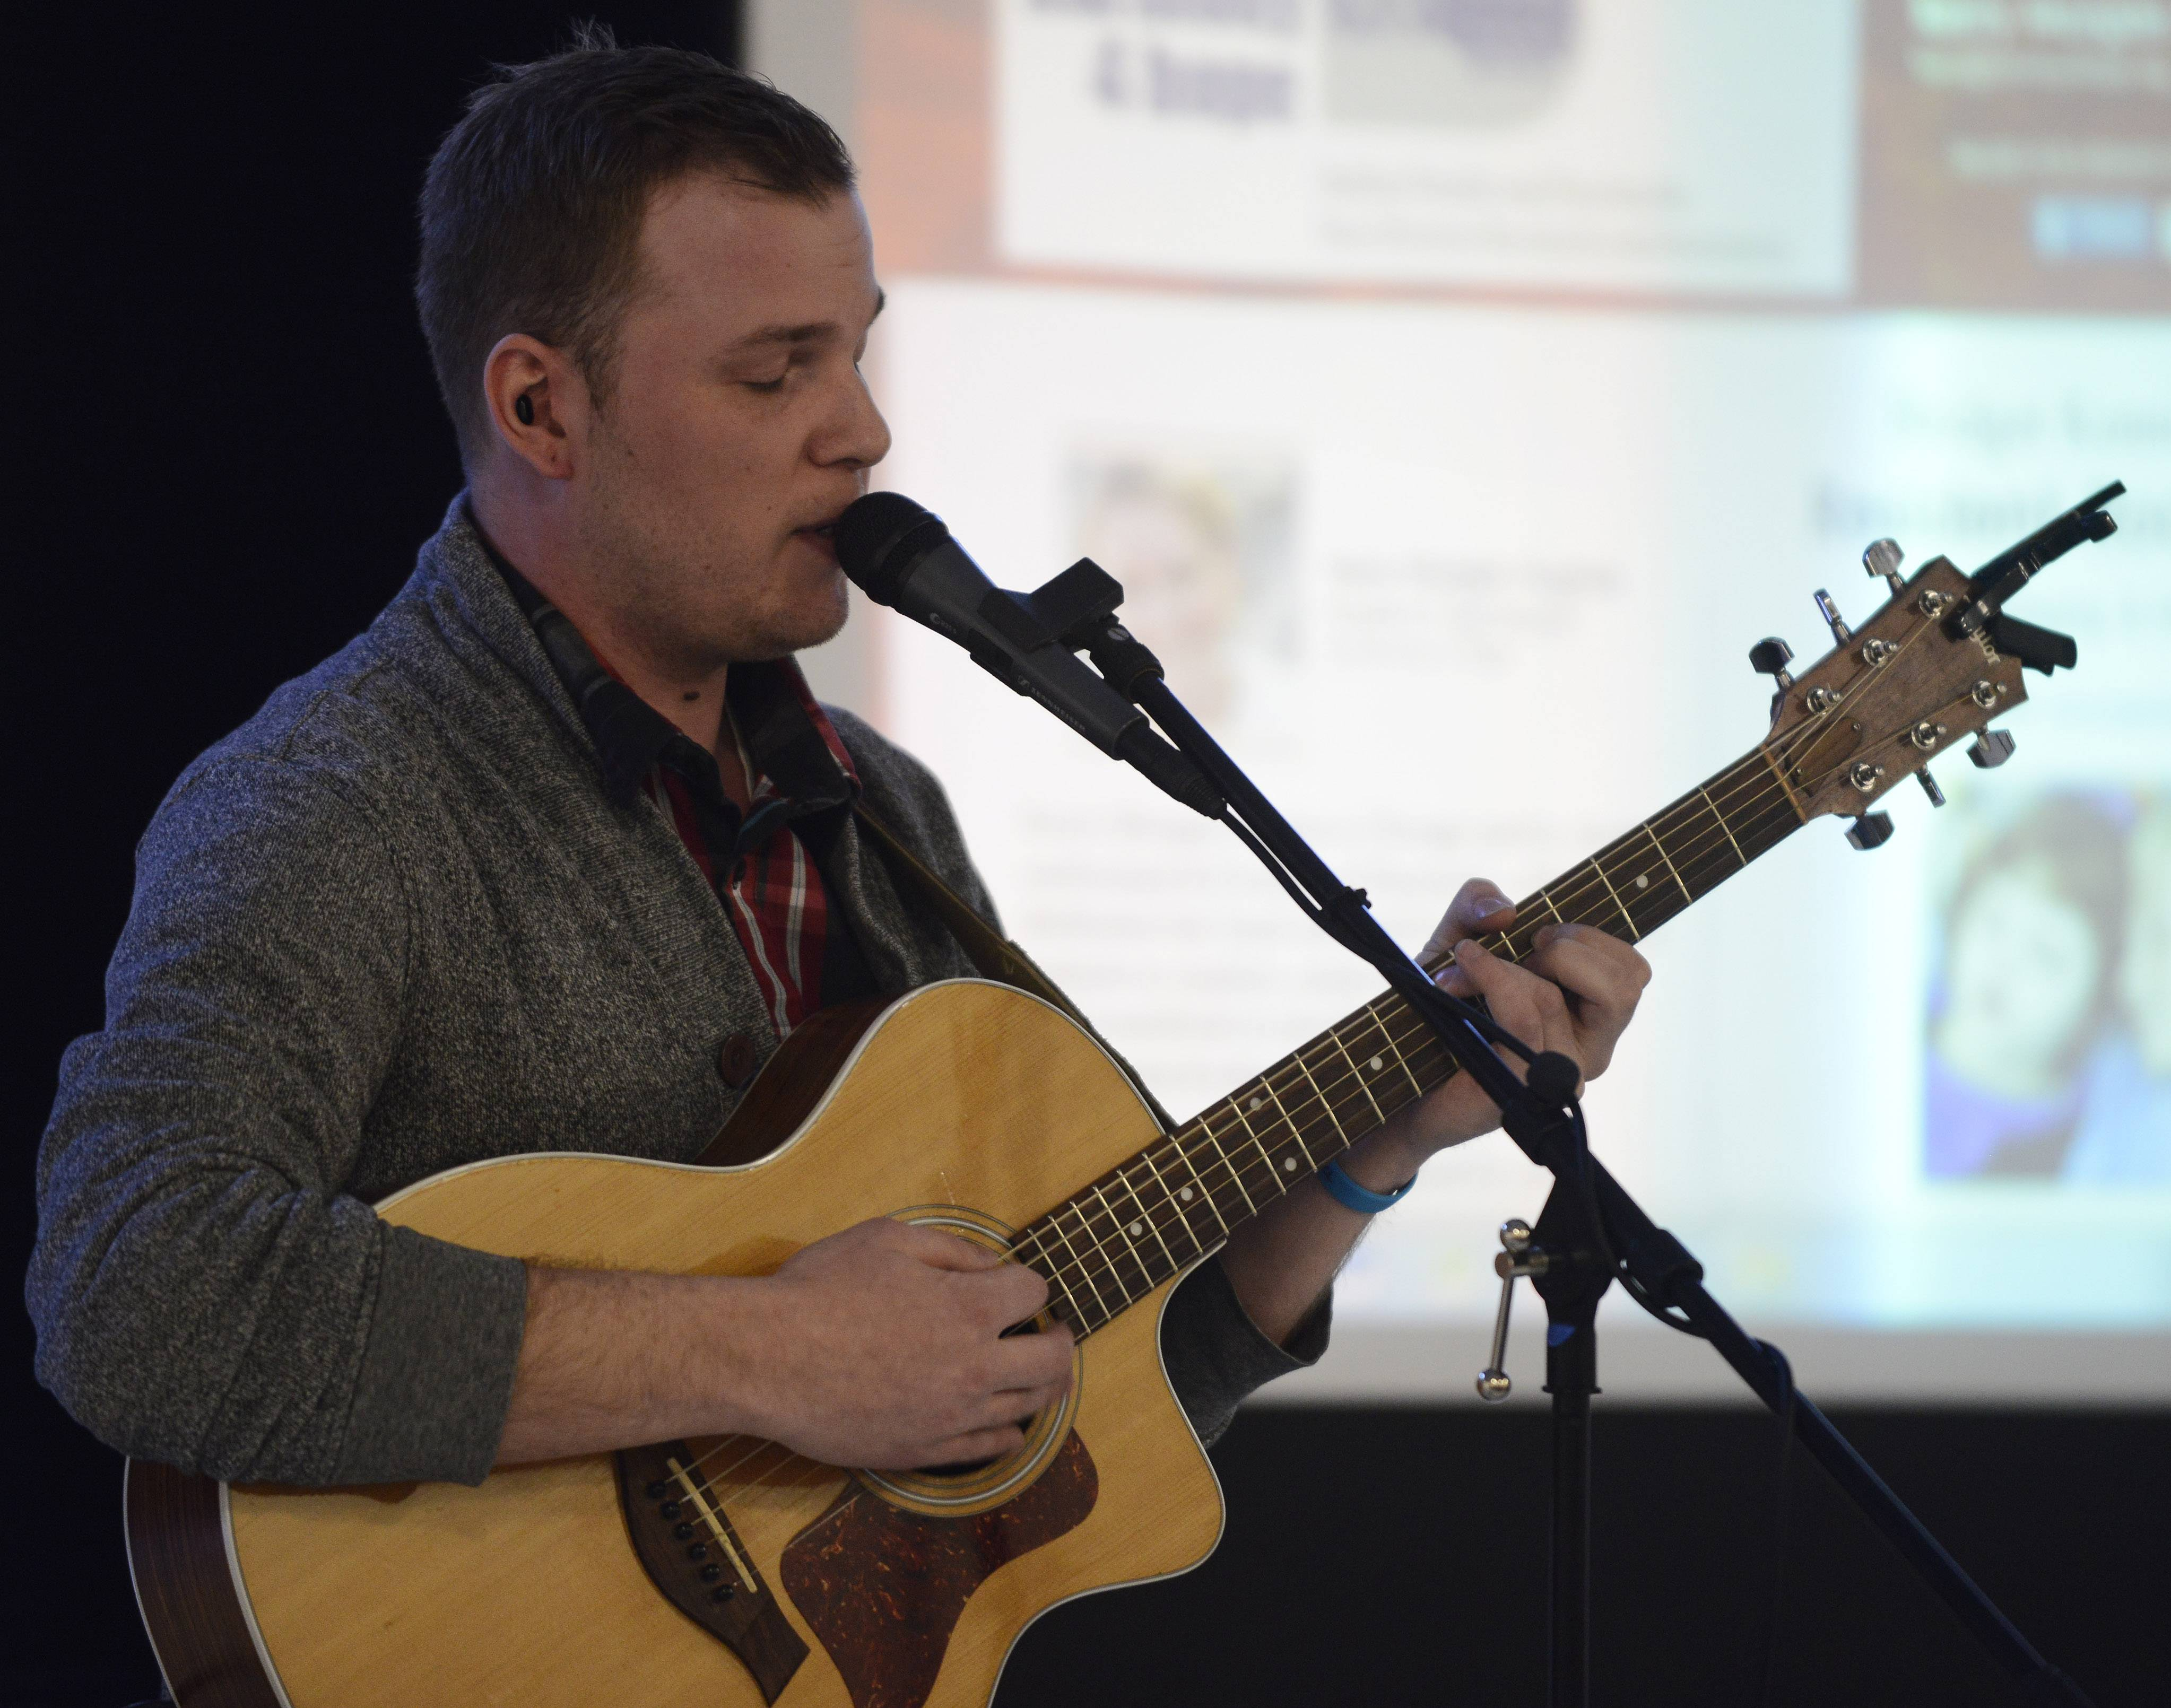 Karl Vincent Roth, a graduate of the Barrington schools, returned for a live music event with students at North Barrington School.